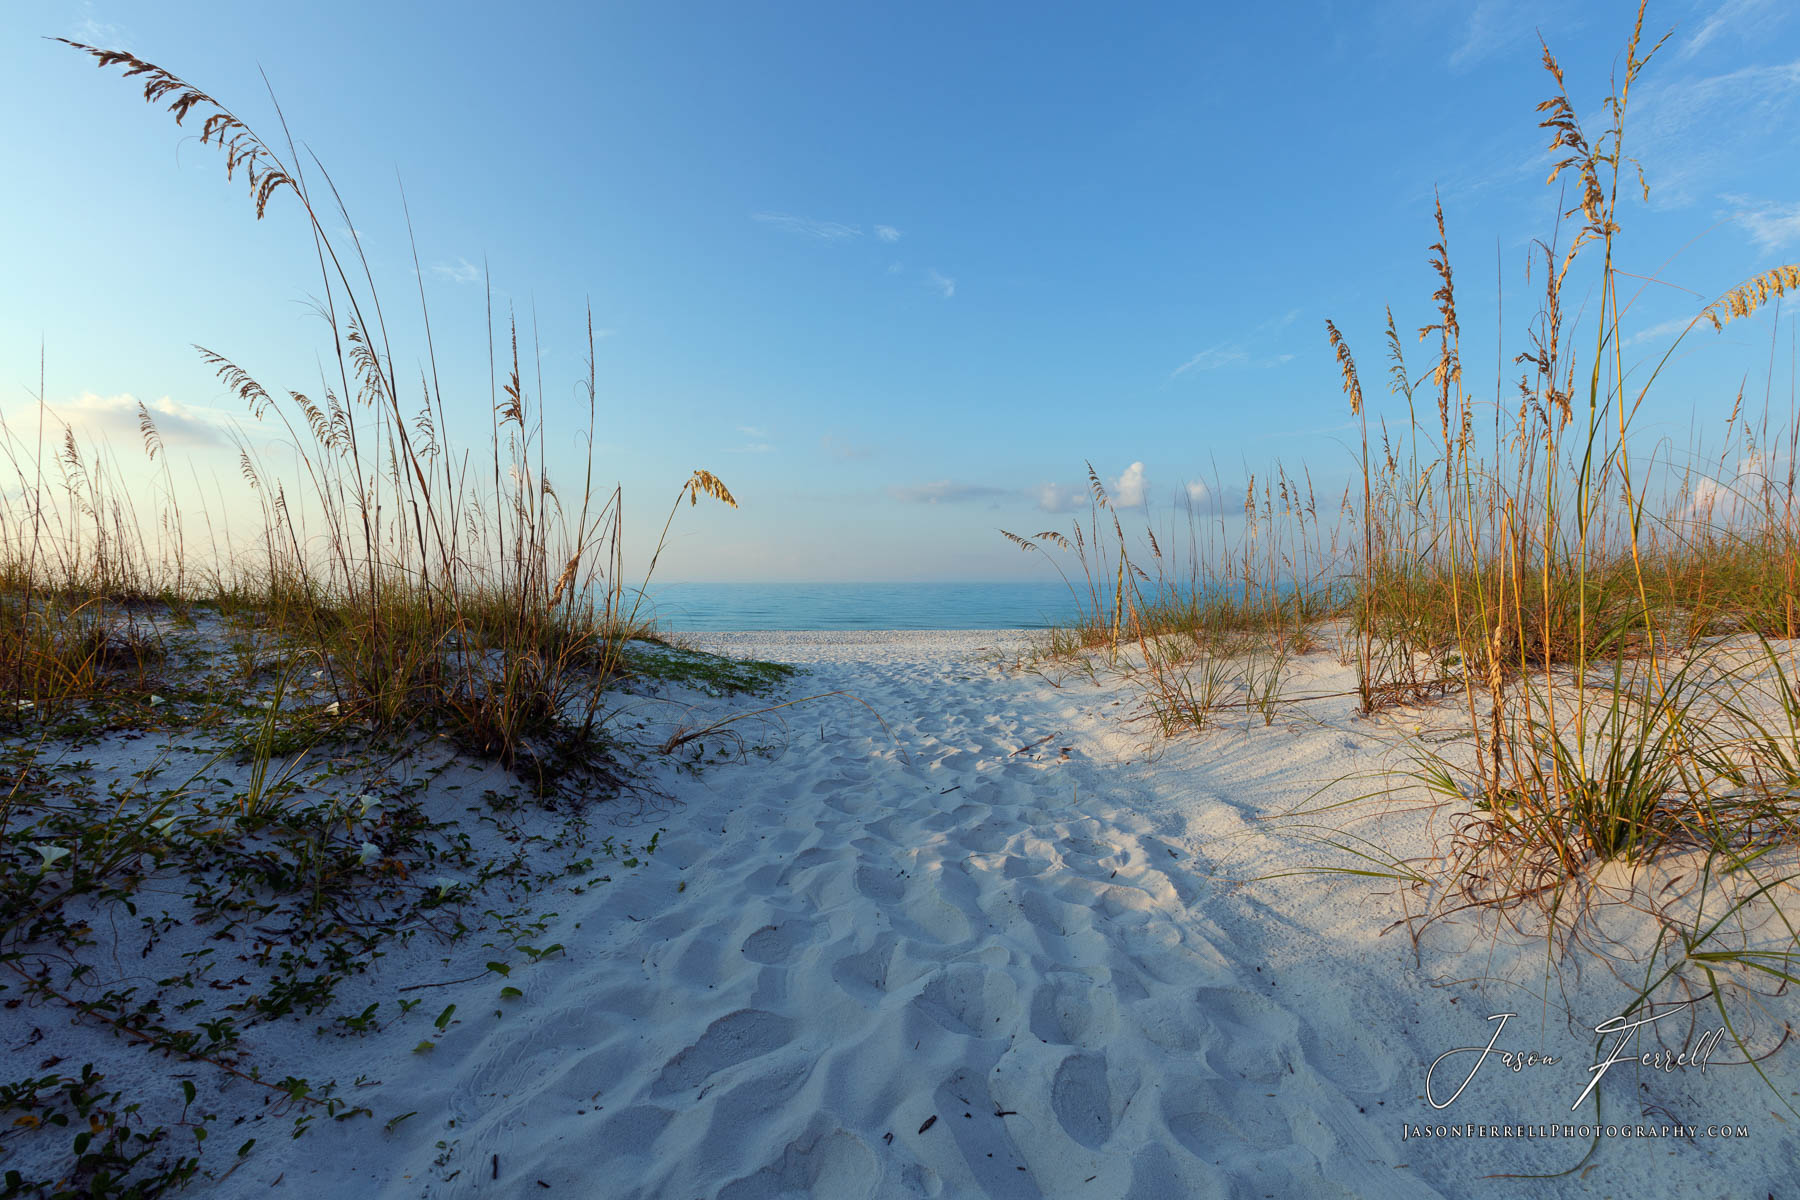 The early morning welcomes beach goers along this sand beach path.